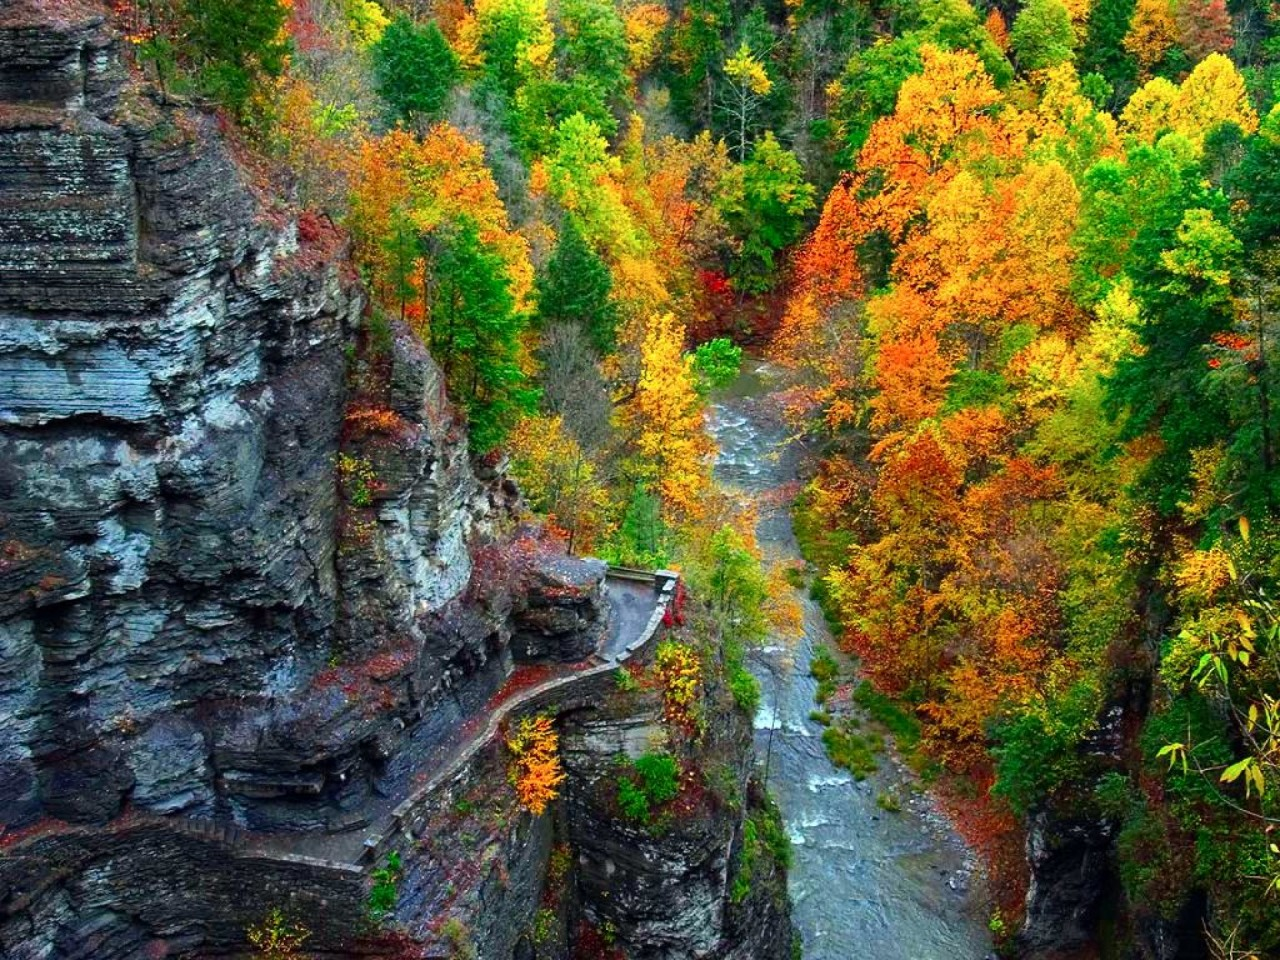 Fall Leaves Wallpaper Windows 7 Peak Lookout Vivid Trees Creek Wallpapers Peak Lookout